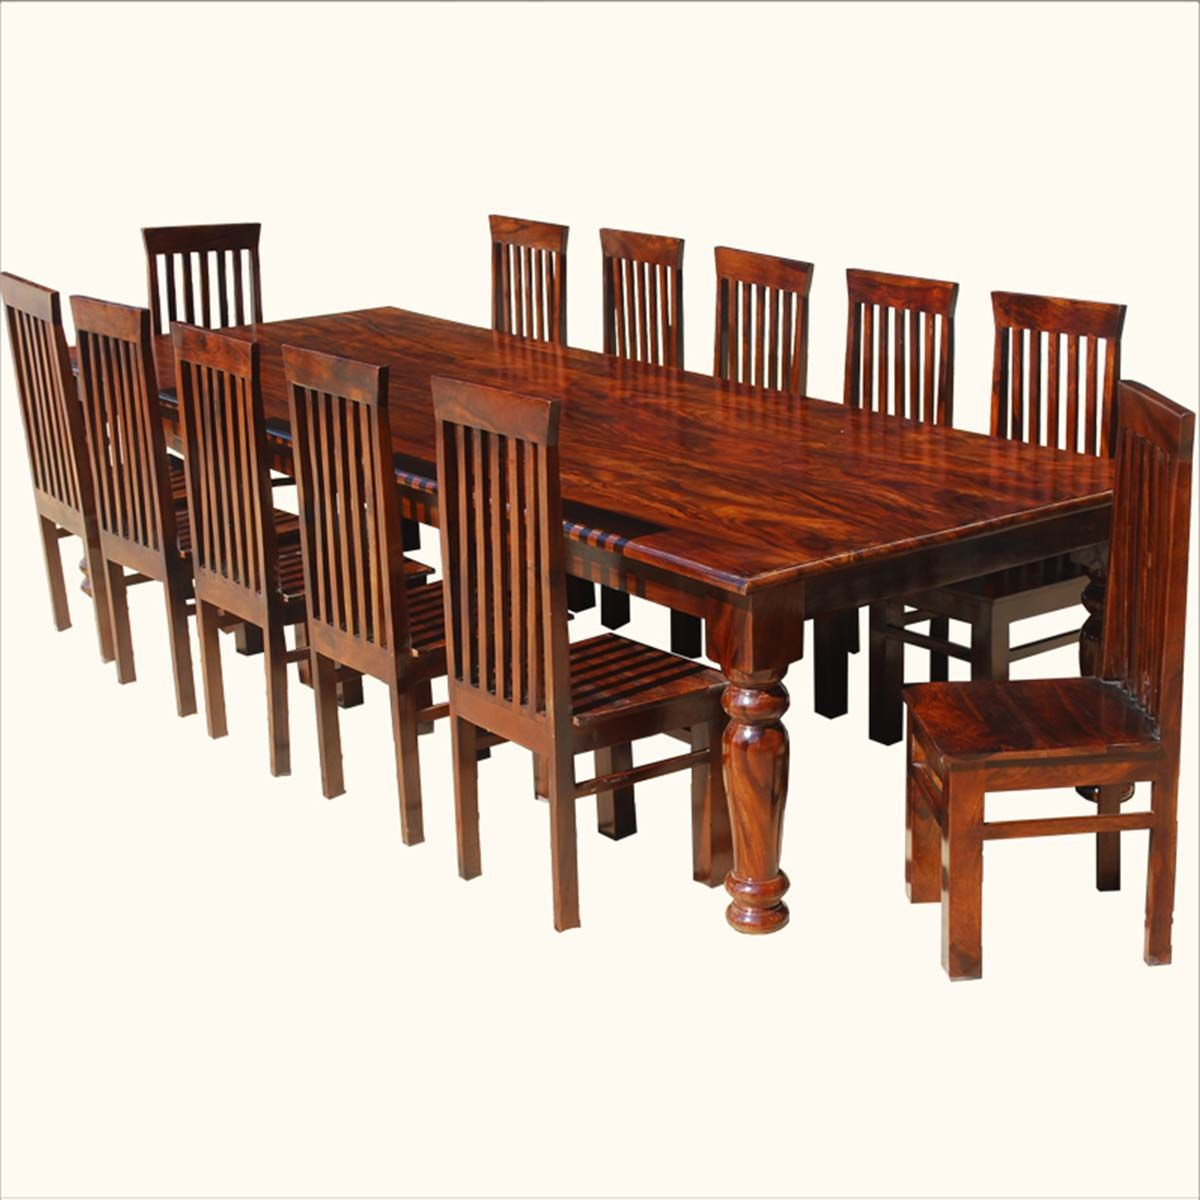 Comely Dining Table For 12 Persons Dining Table Ideas Large